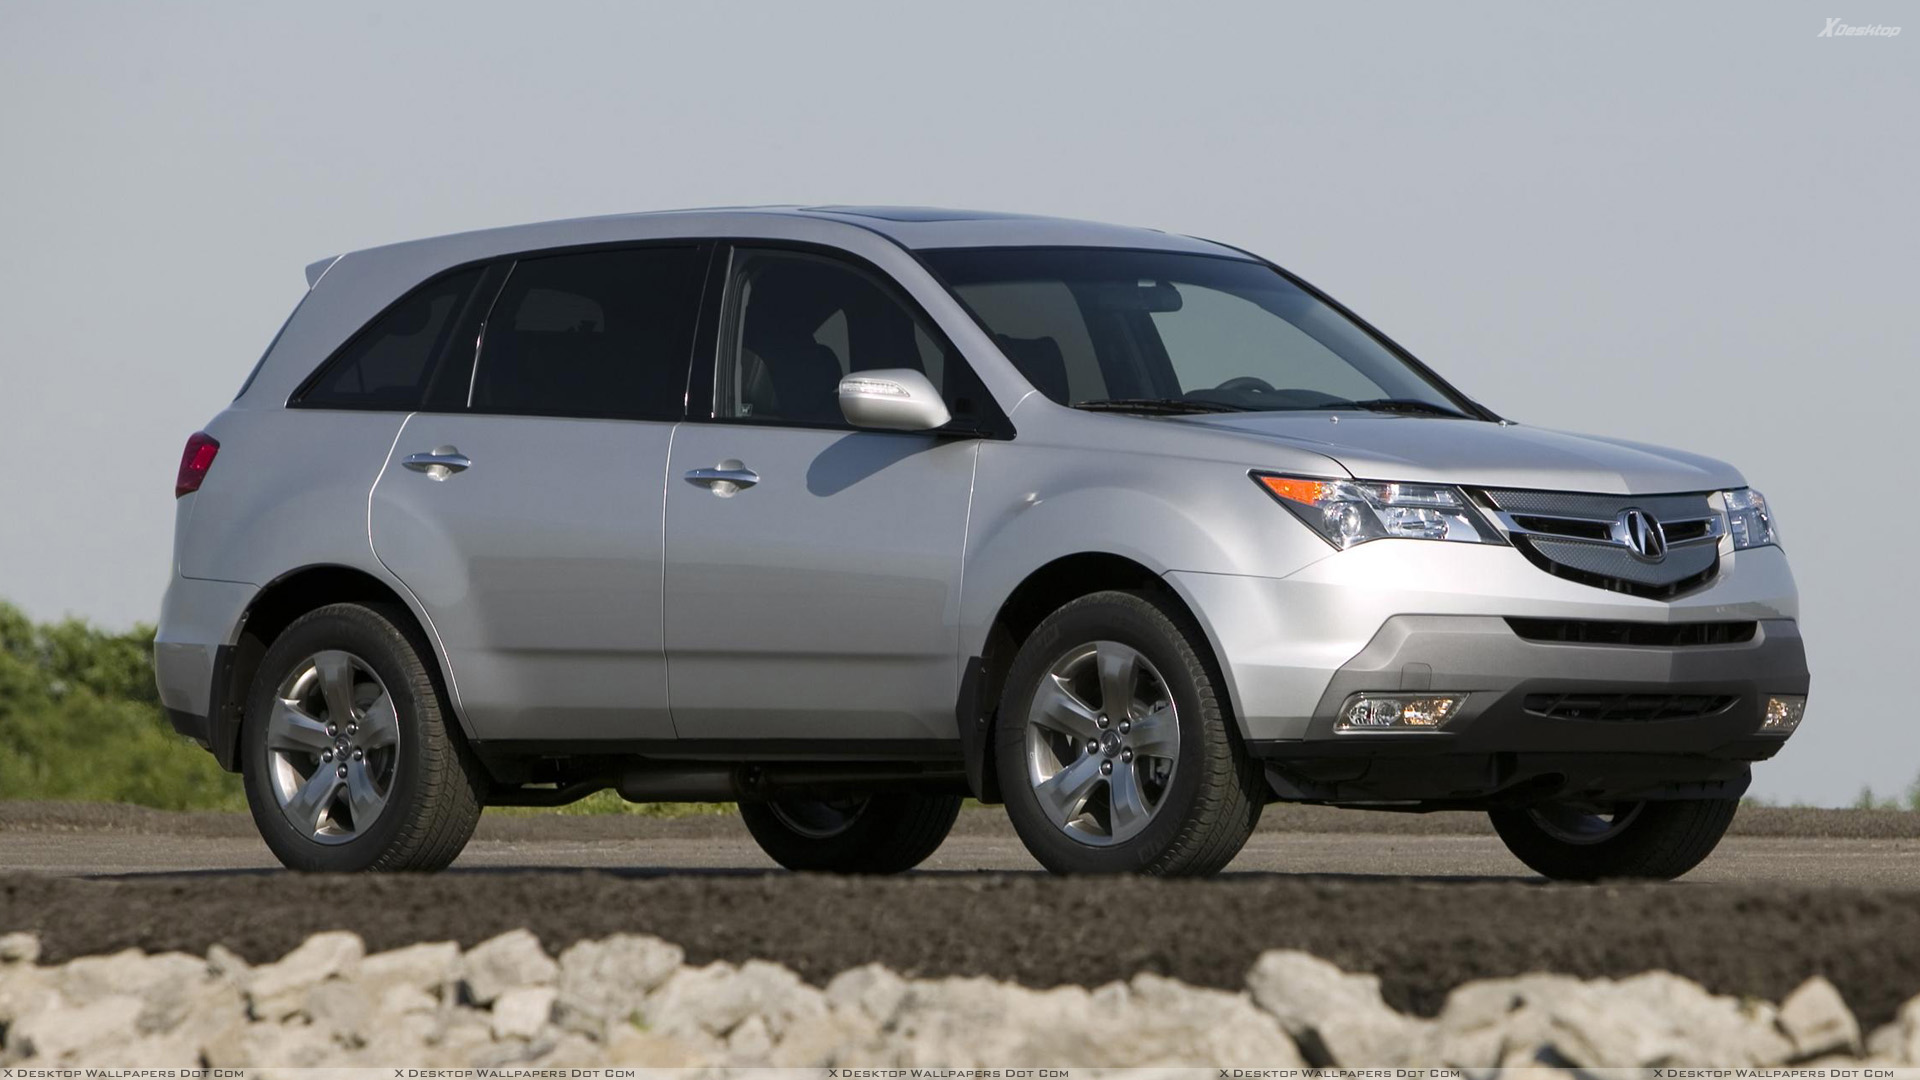 2008 acura mdx 005 in silver front side pose wallpaper